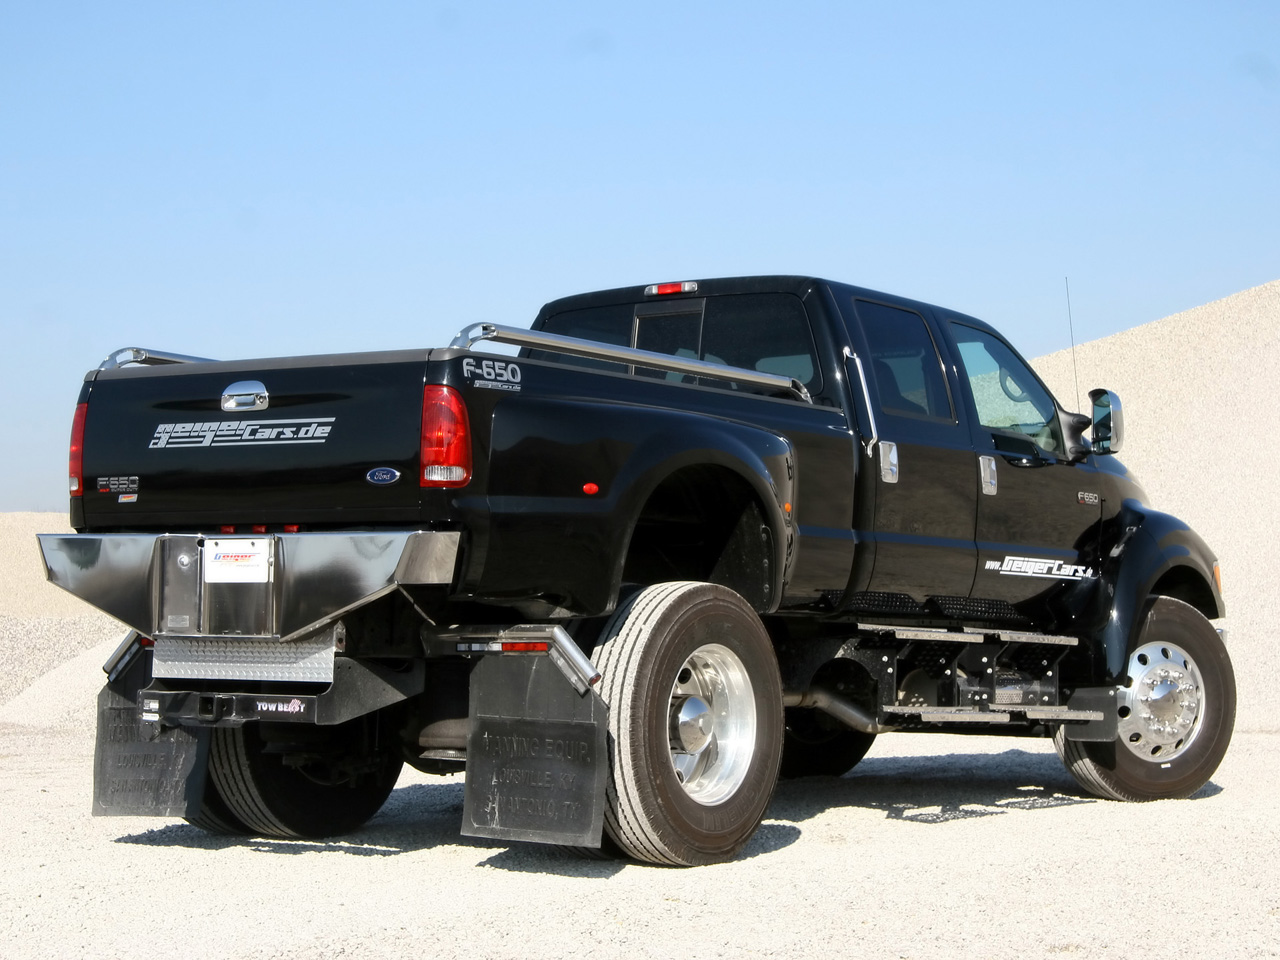 Ford f-620 photo - 9